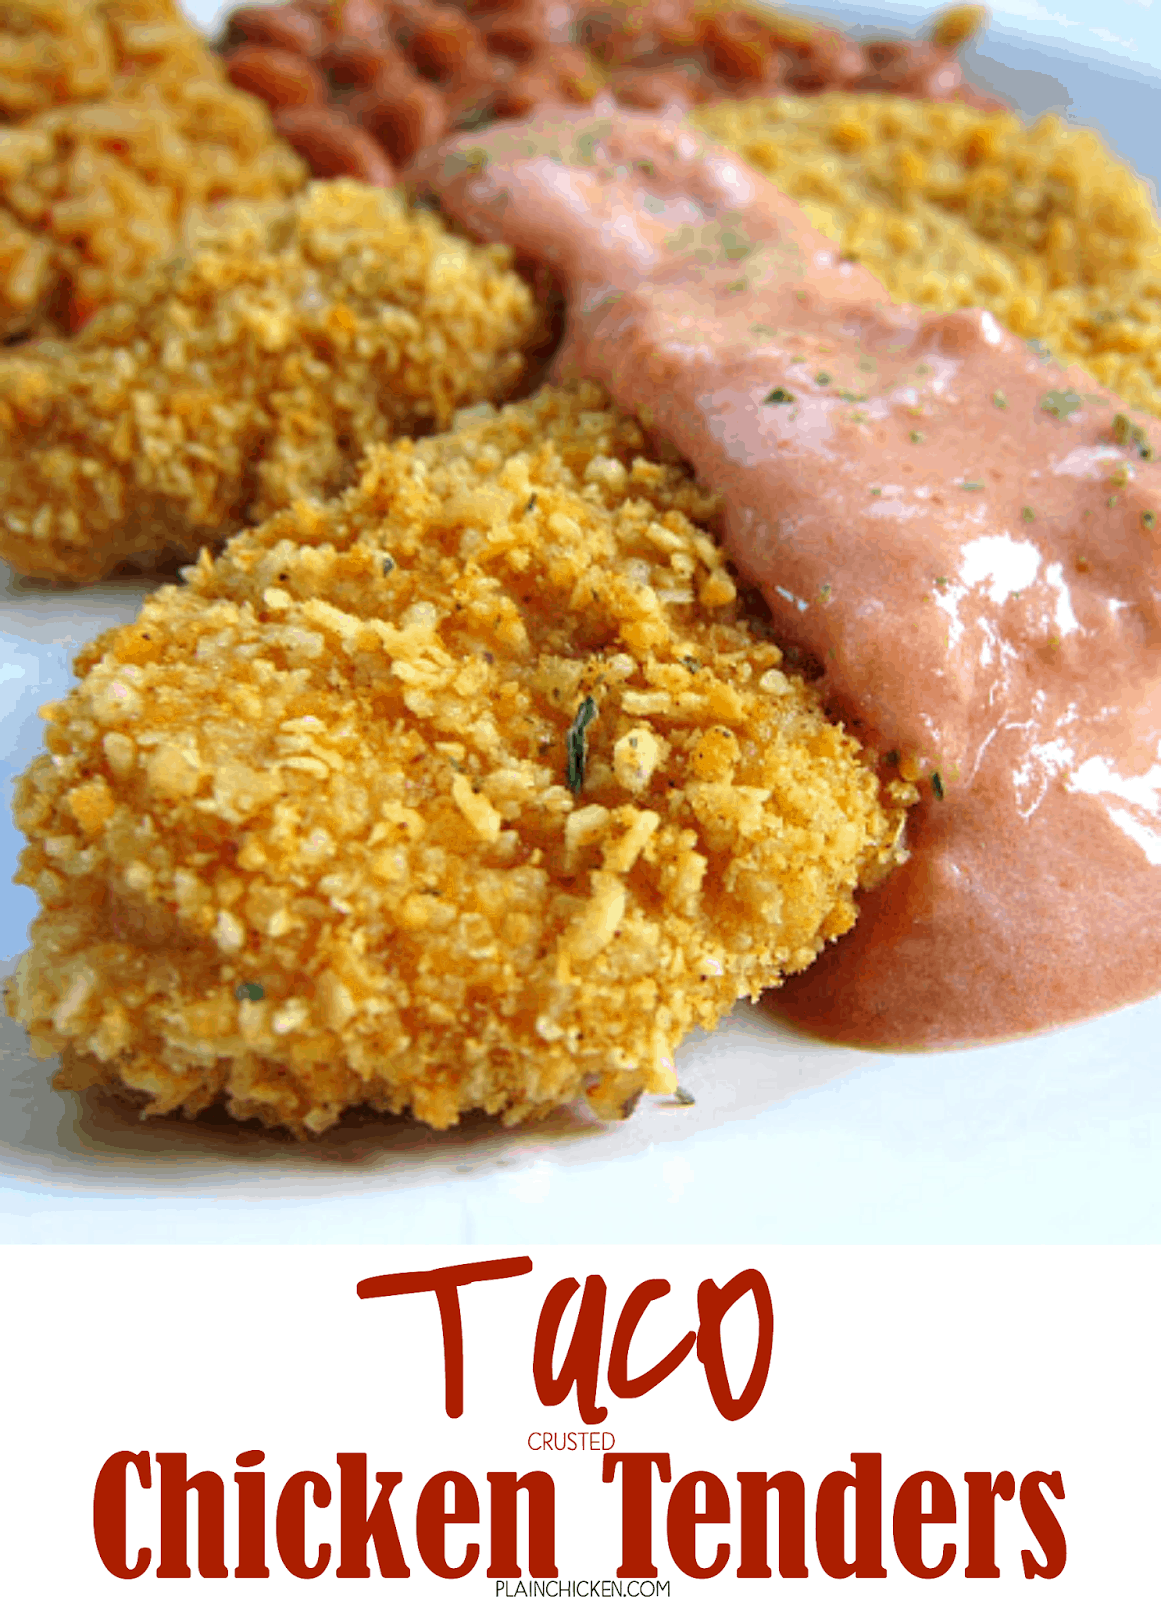 Taco Crusted Chicken Fingers - baked chicken tenders coated in taco seasoning and tortilla chips - served with a creamy salsa on top. We wanted to lick the plate! Can coat the chicken and freeze unbaked for a quick meal later.